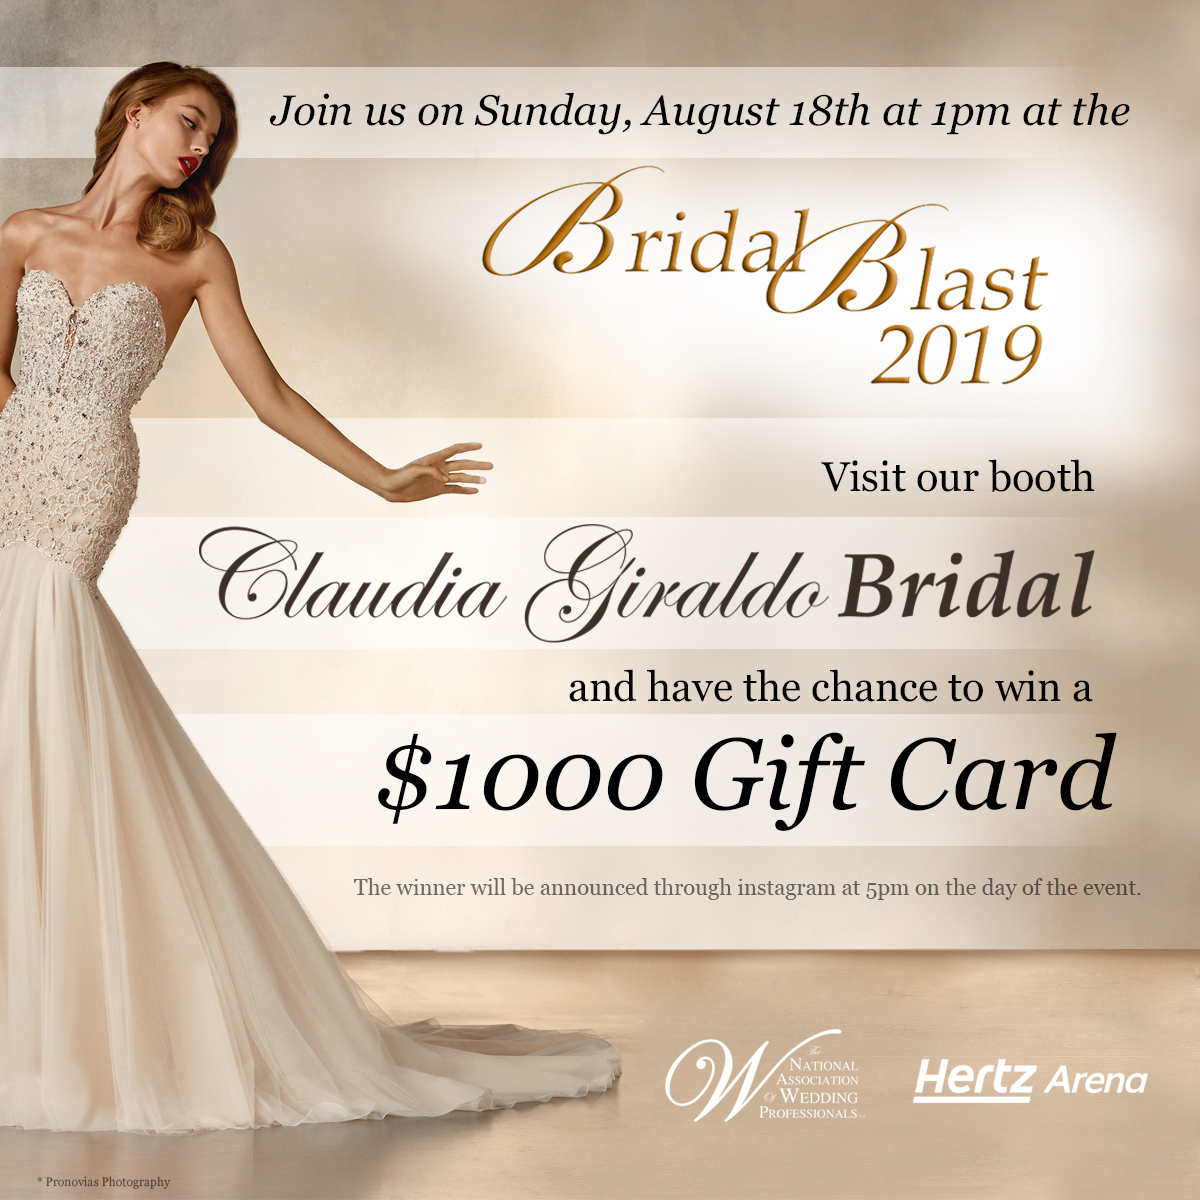 CLAUDIA GIRALDO BRIDAL AT THE BRIDAL BLAST!